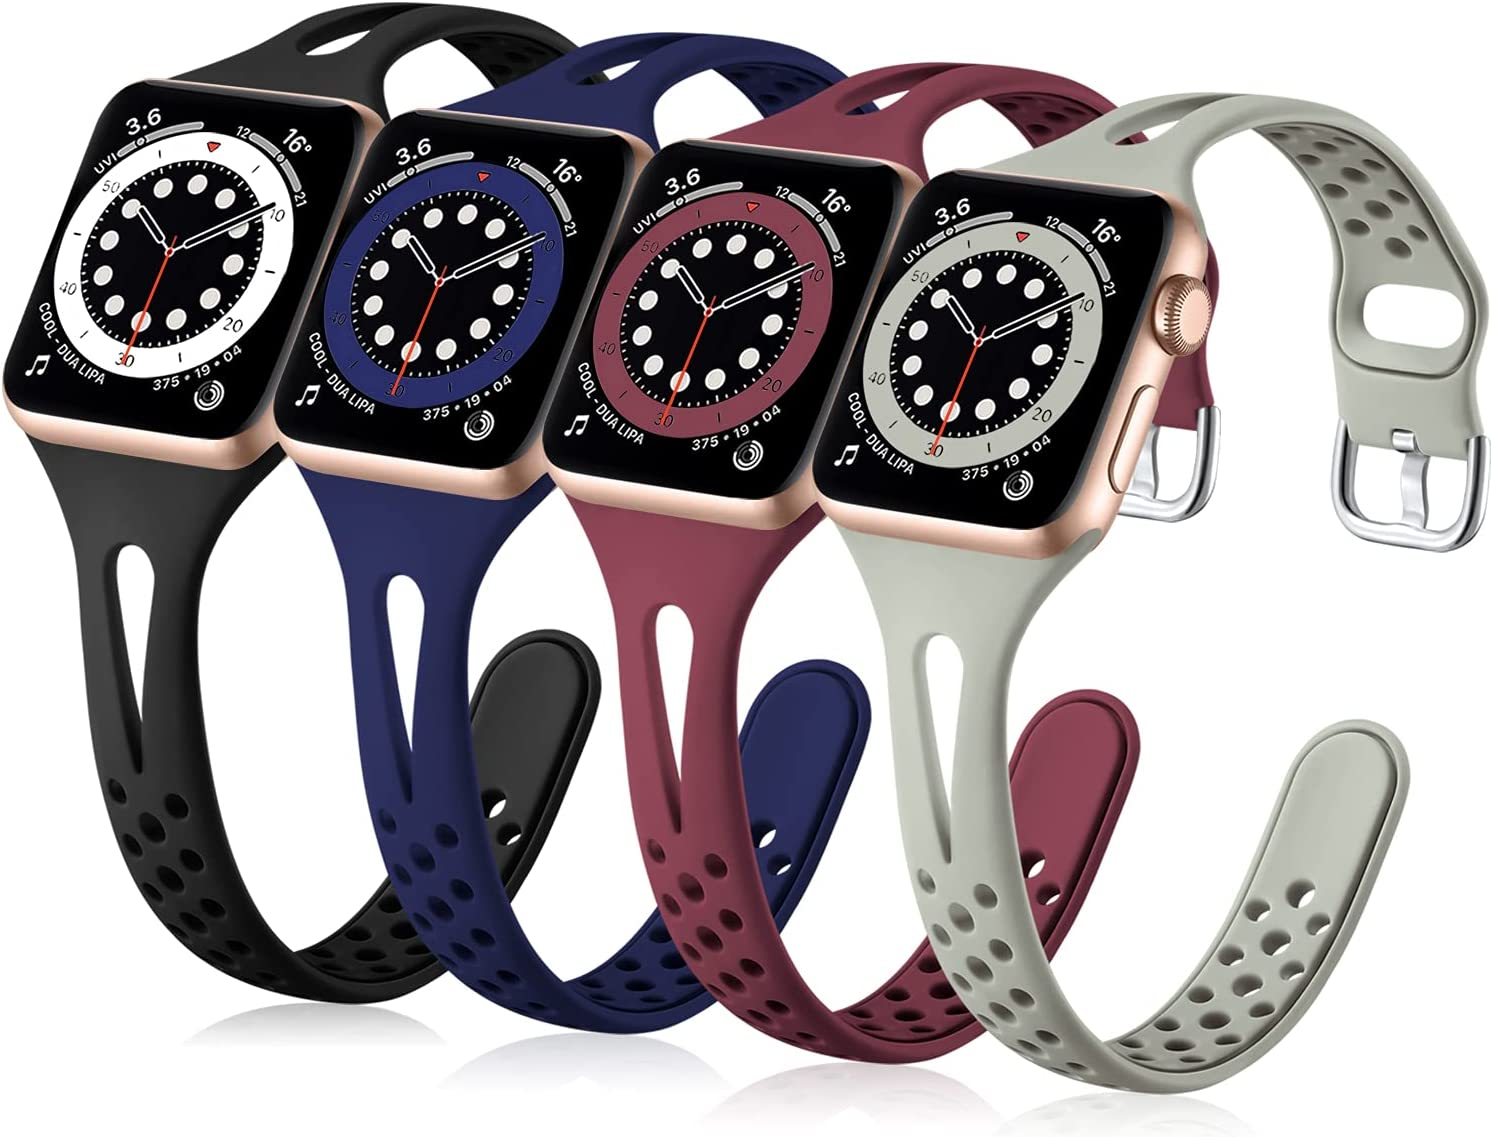 Getino Compatible with Apple Watch Band 40mm 38mm 41mm iWatch Bands Series 7 SE 6 5 4 3 2 1 for Women Men, Flexible Durable and Breathable Narrow Slim Replacement Sport Bands, Black/ Navy/ Wine/ Gray